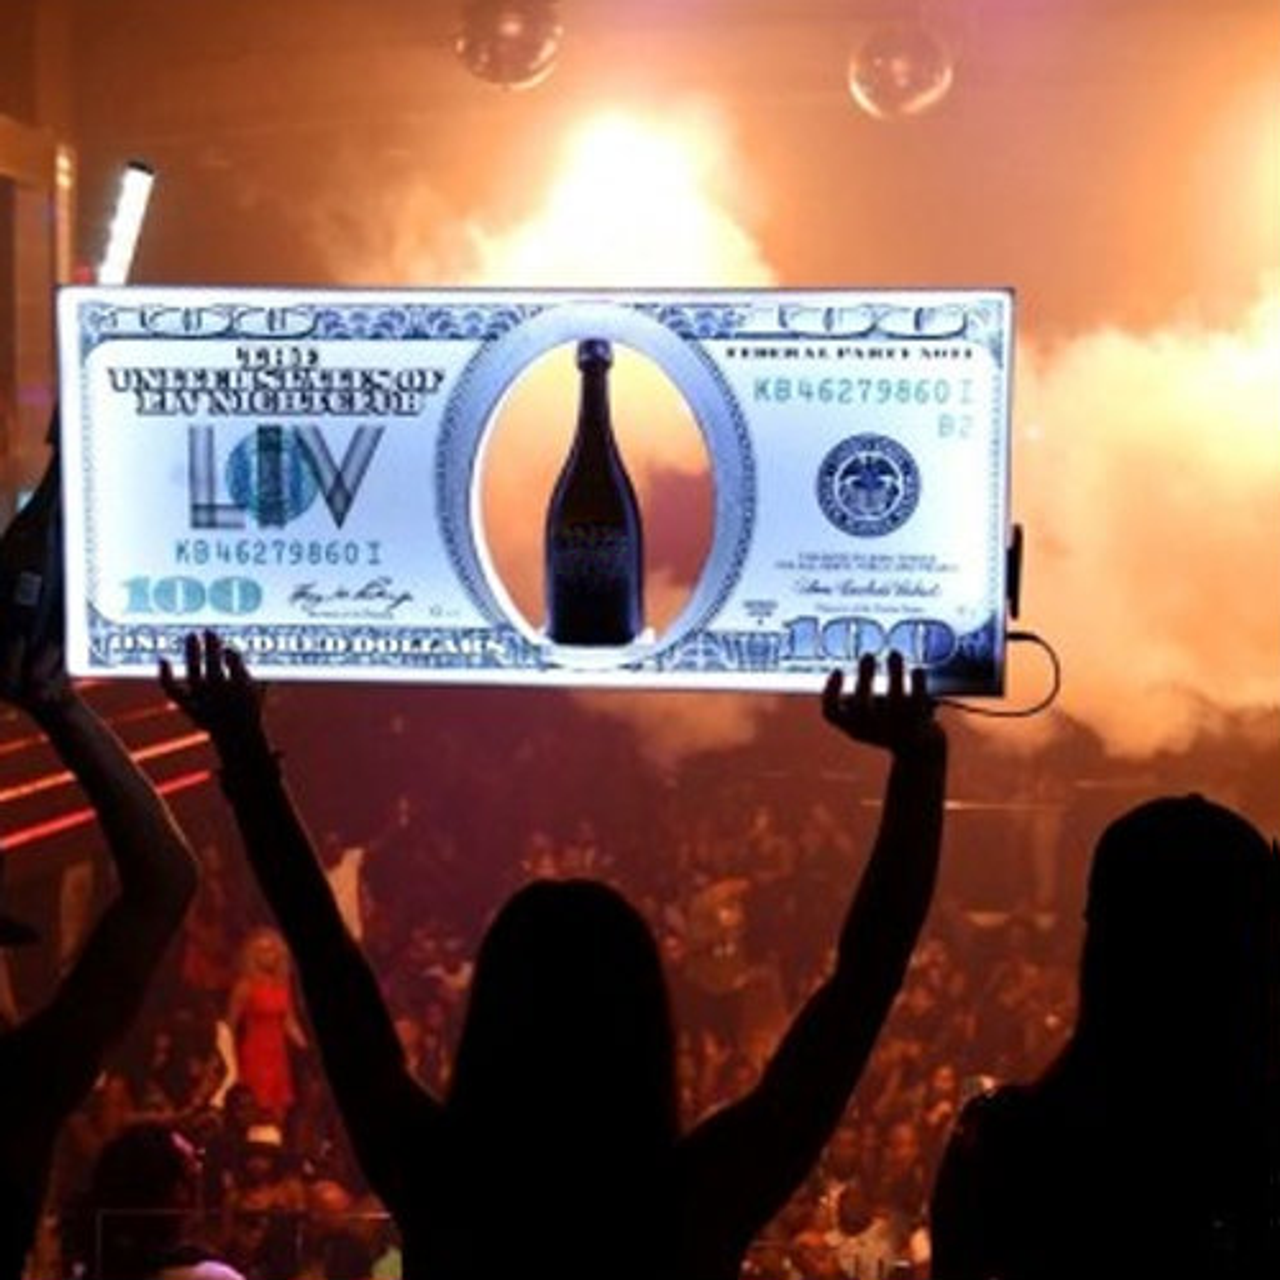 LED, Benjamin,Dollar, bill, Champagne,Bottle,Service,Delivery, Carrier, Presenter,Tray,Caddie,caddy ,club, miami, Nightlub, VIP, custom, Light up,